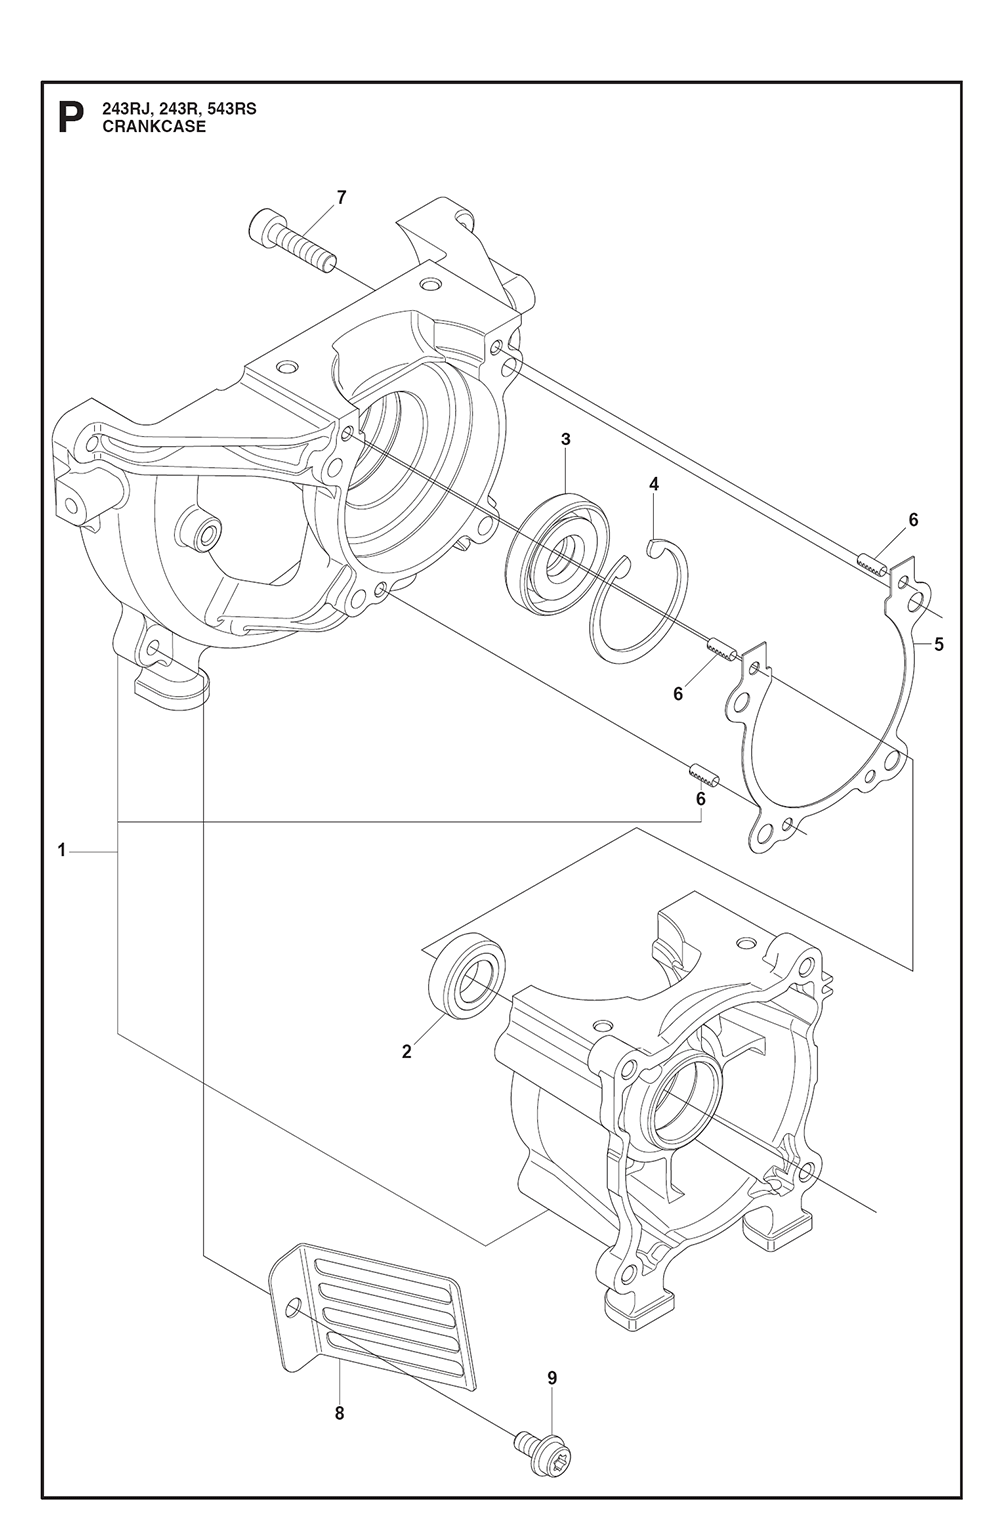 243 R-(23)-Husqvarna-PB-13Break Down